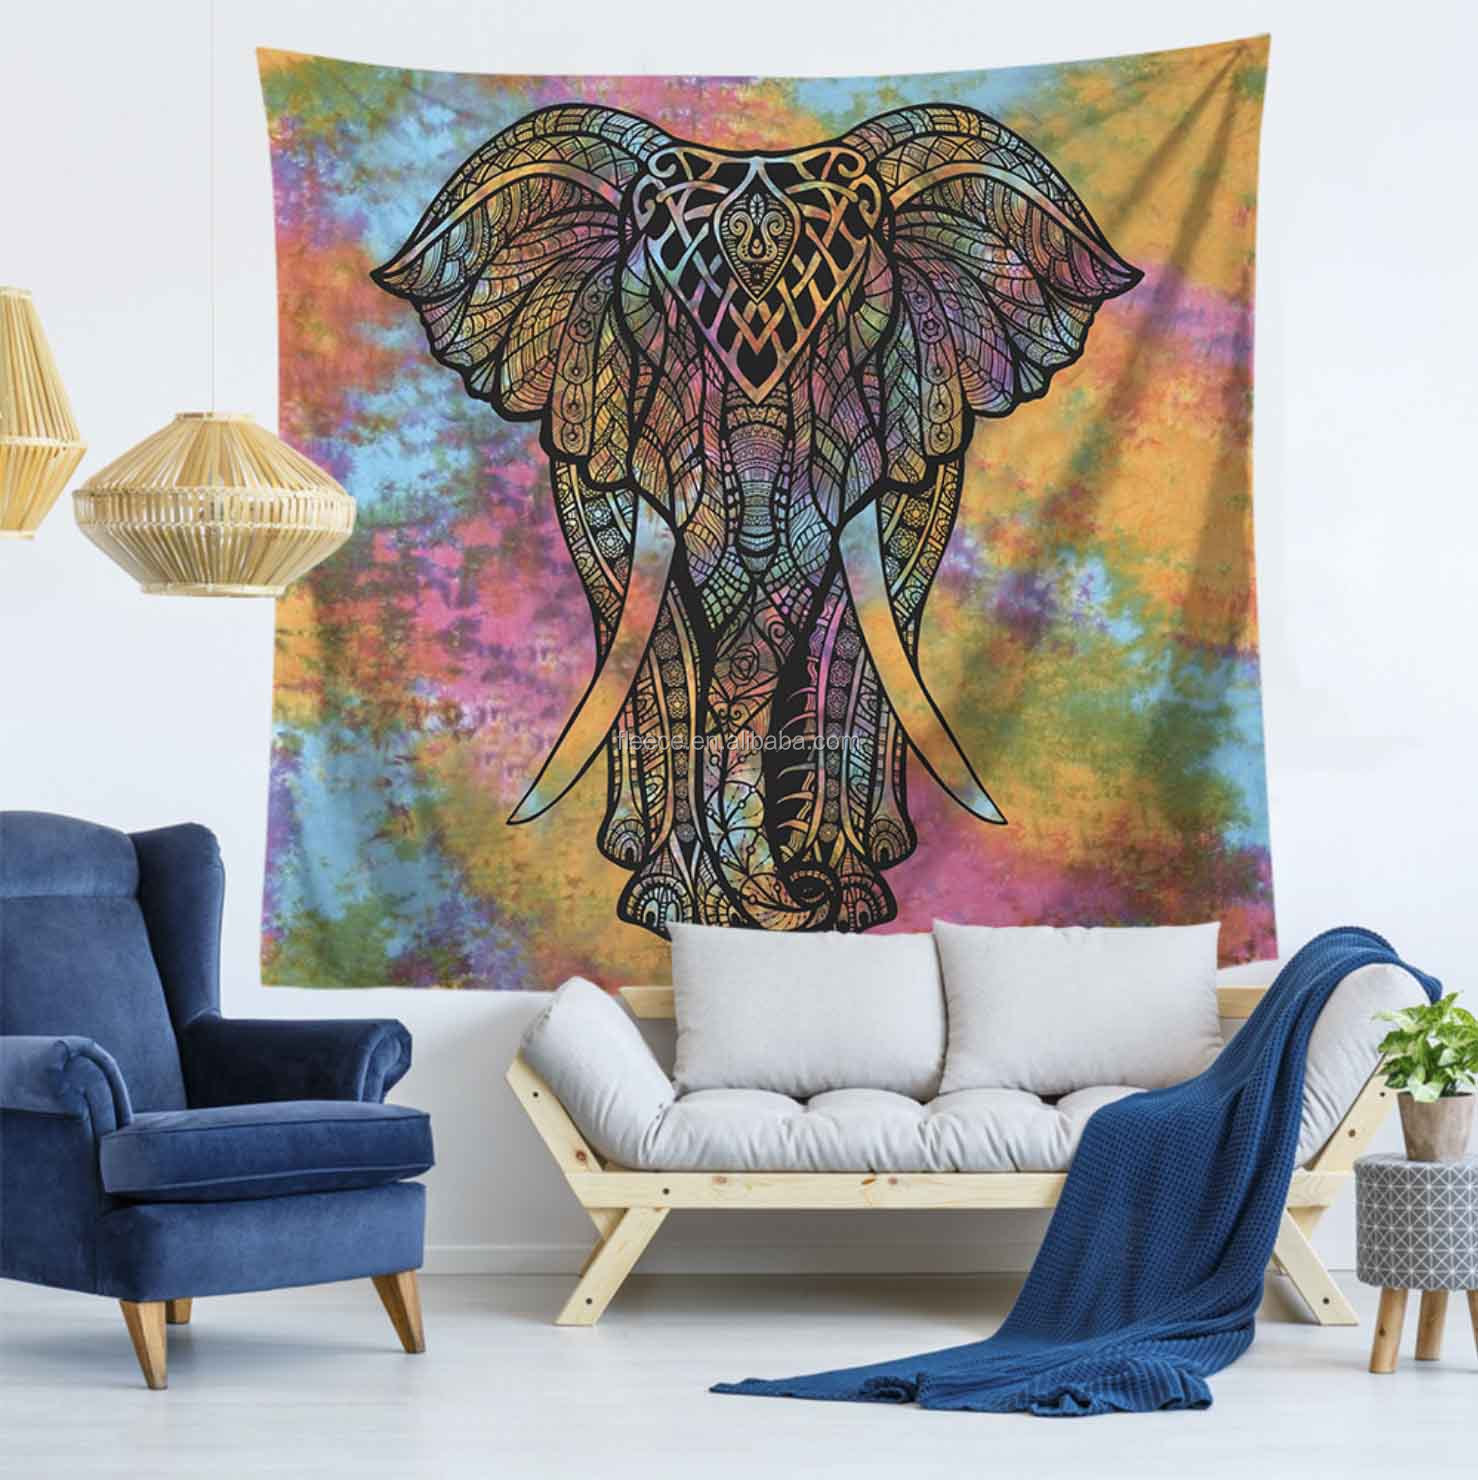 India Modern Wall Hanging Flat Sheet Colorful Elephant Mandala Tapestry Wall